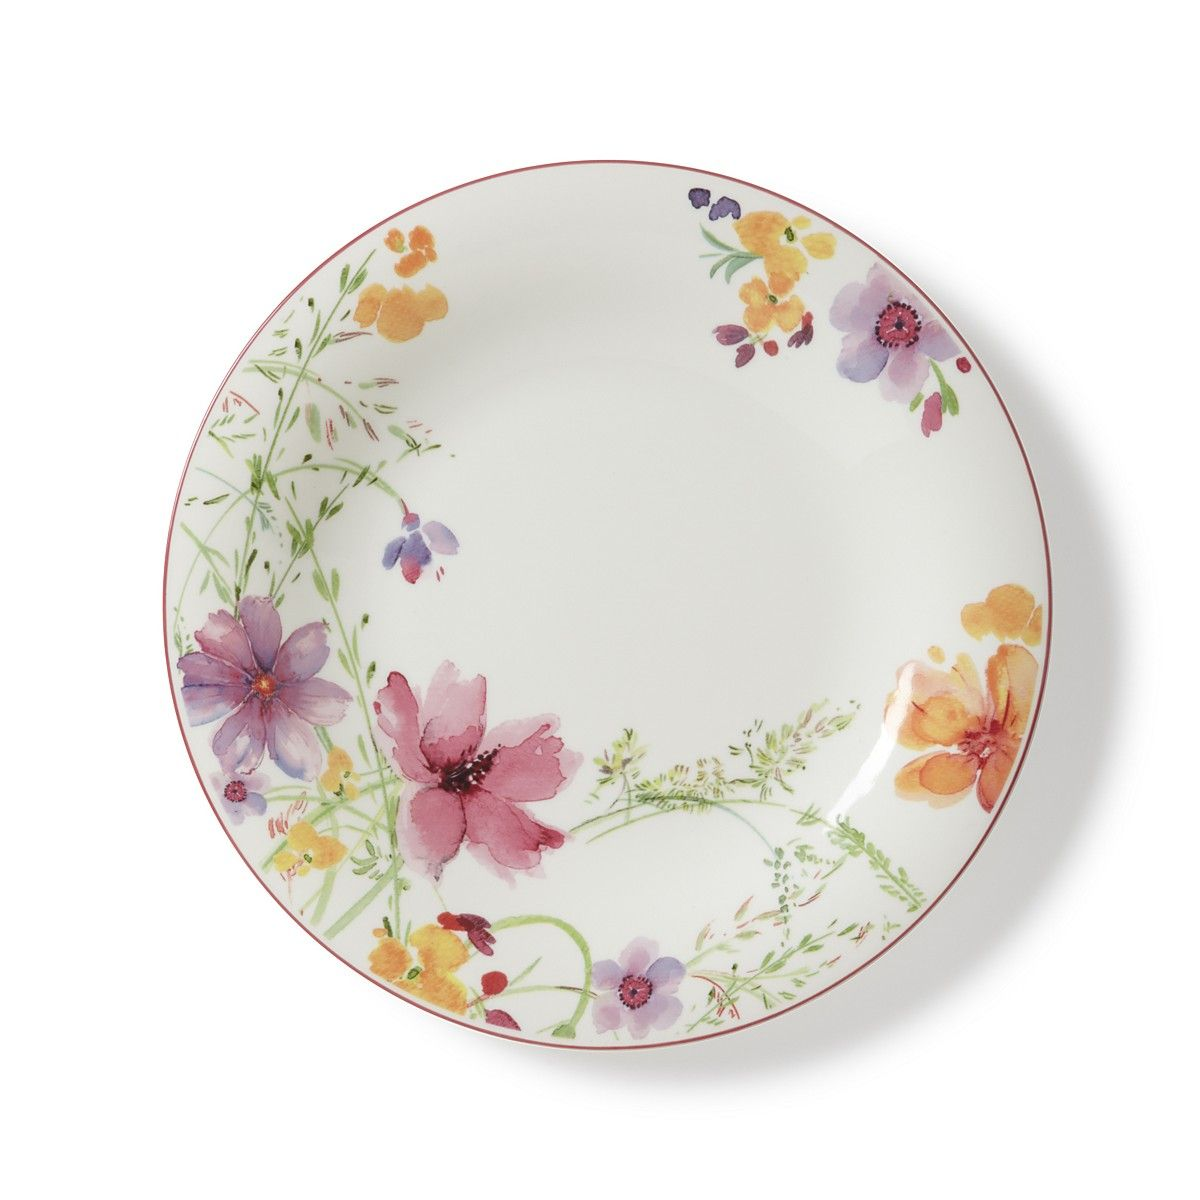 villeroy boch mariefleur dinner plate bloomingdale 39 s dinnerware pinterest dinnerware. Black Bedroom Furniture Sets. Home Design Ideas